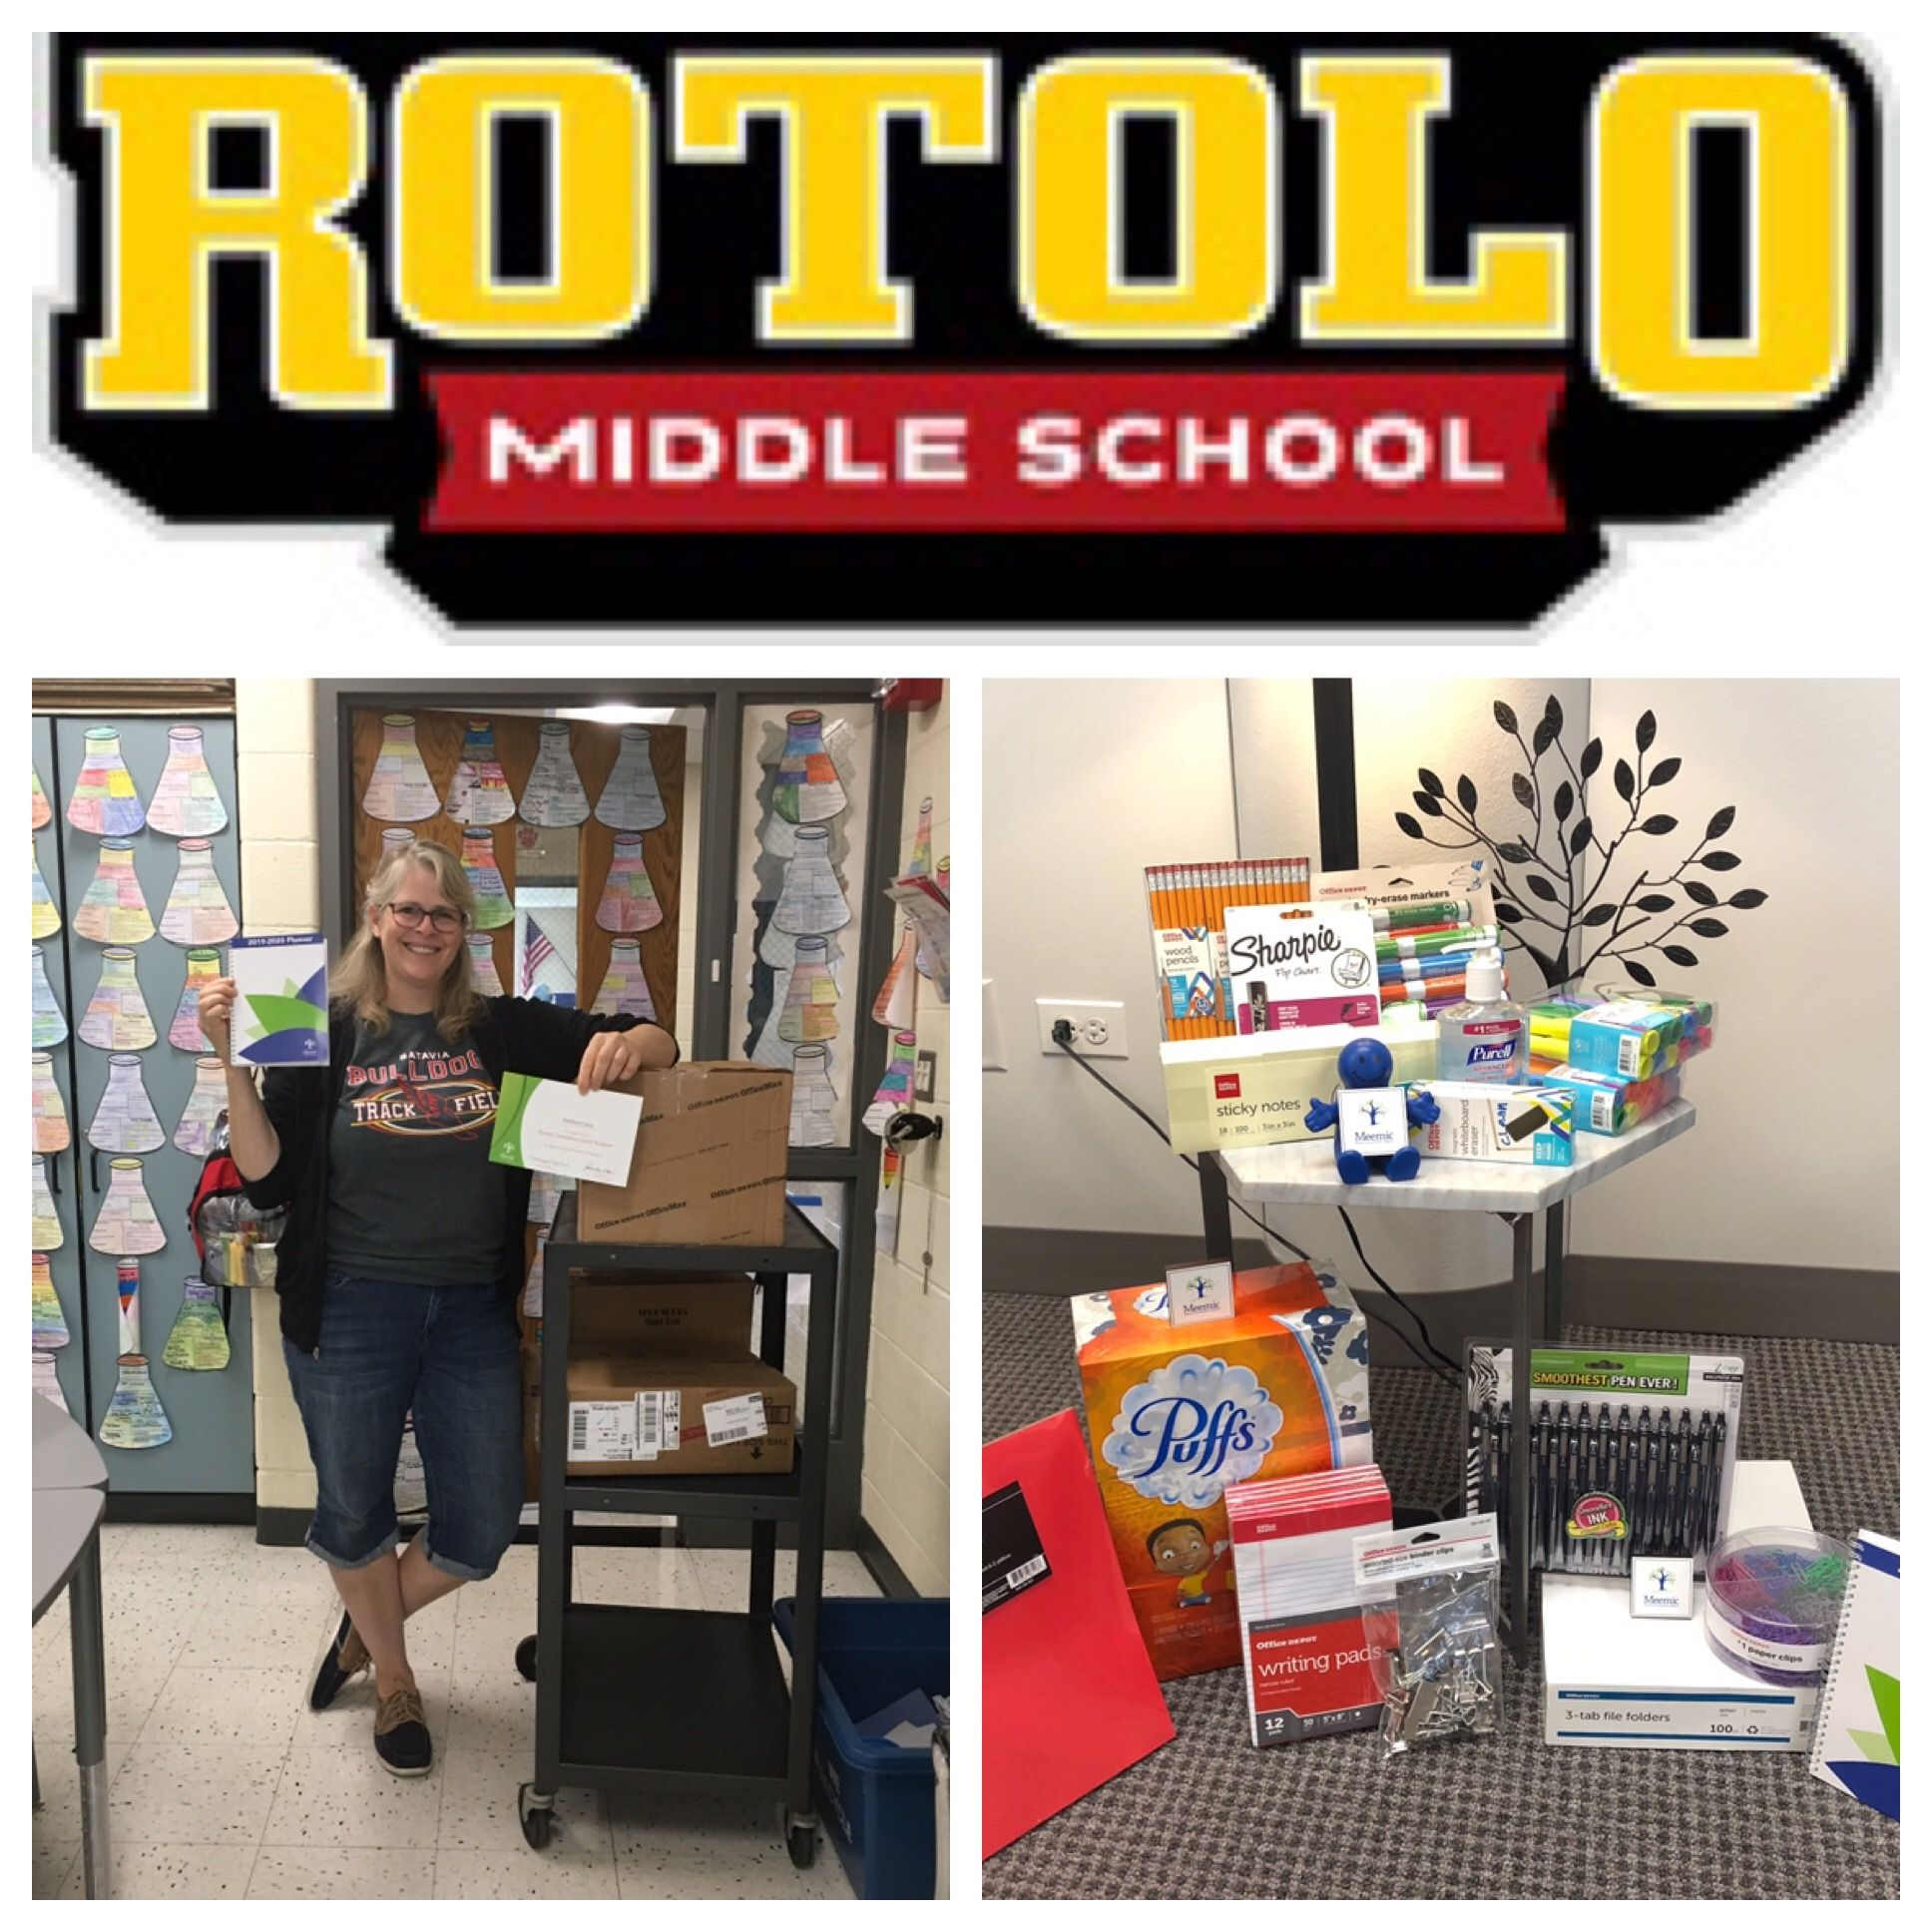 Congratulations To Kathleen Carey From Rotolo Middle School